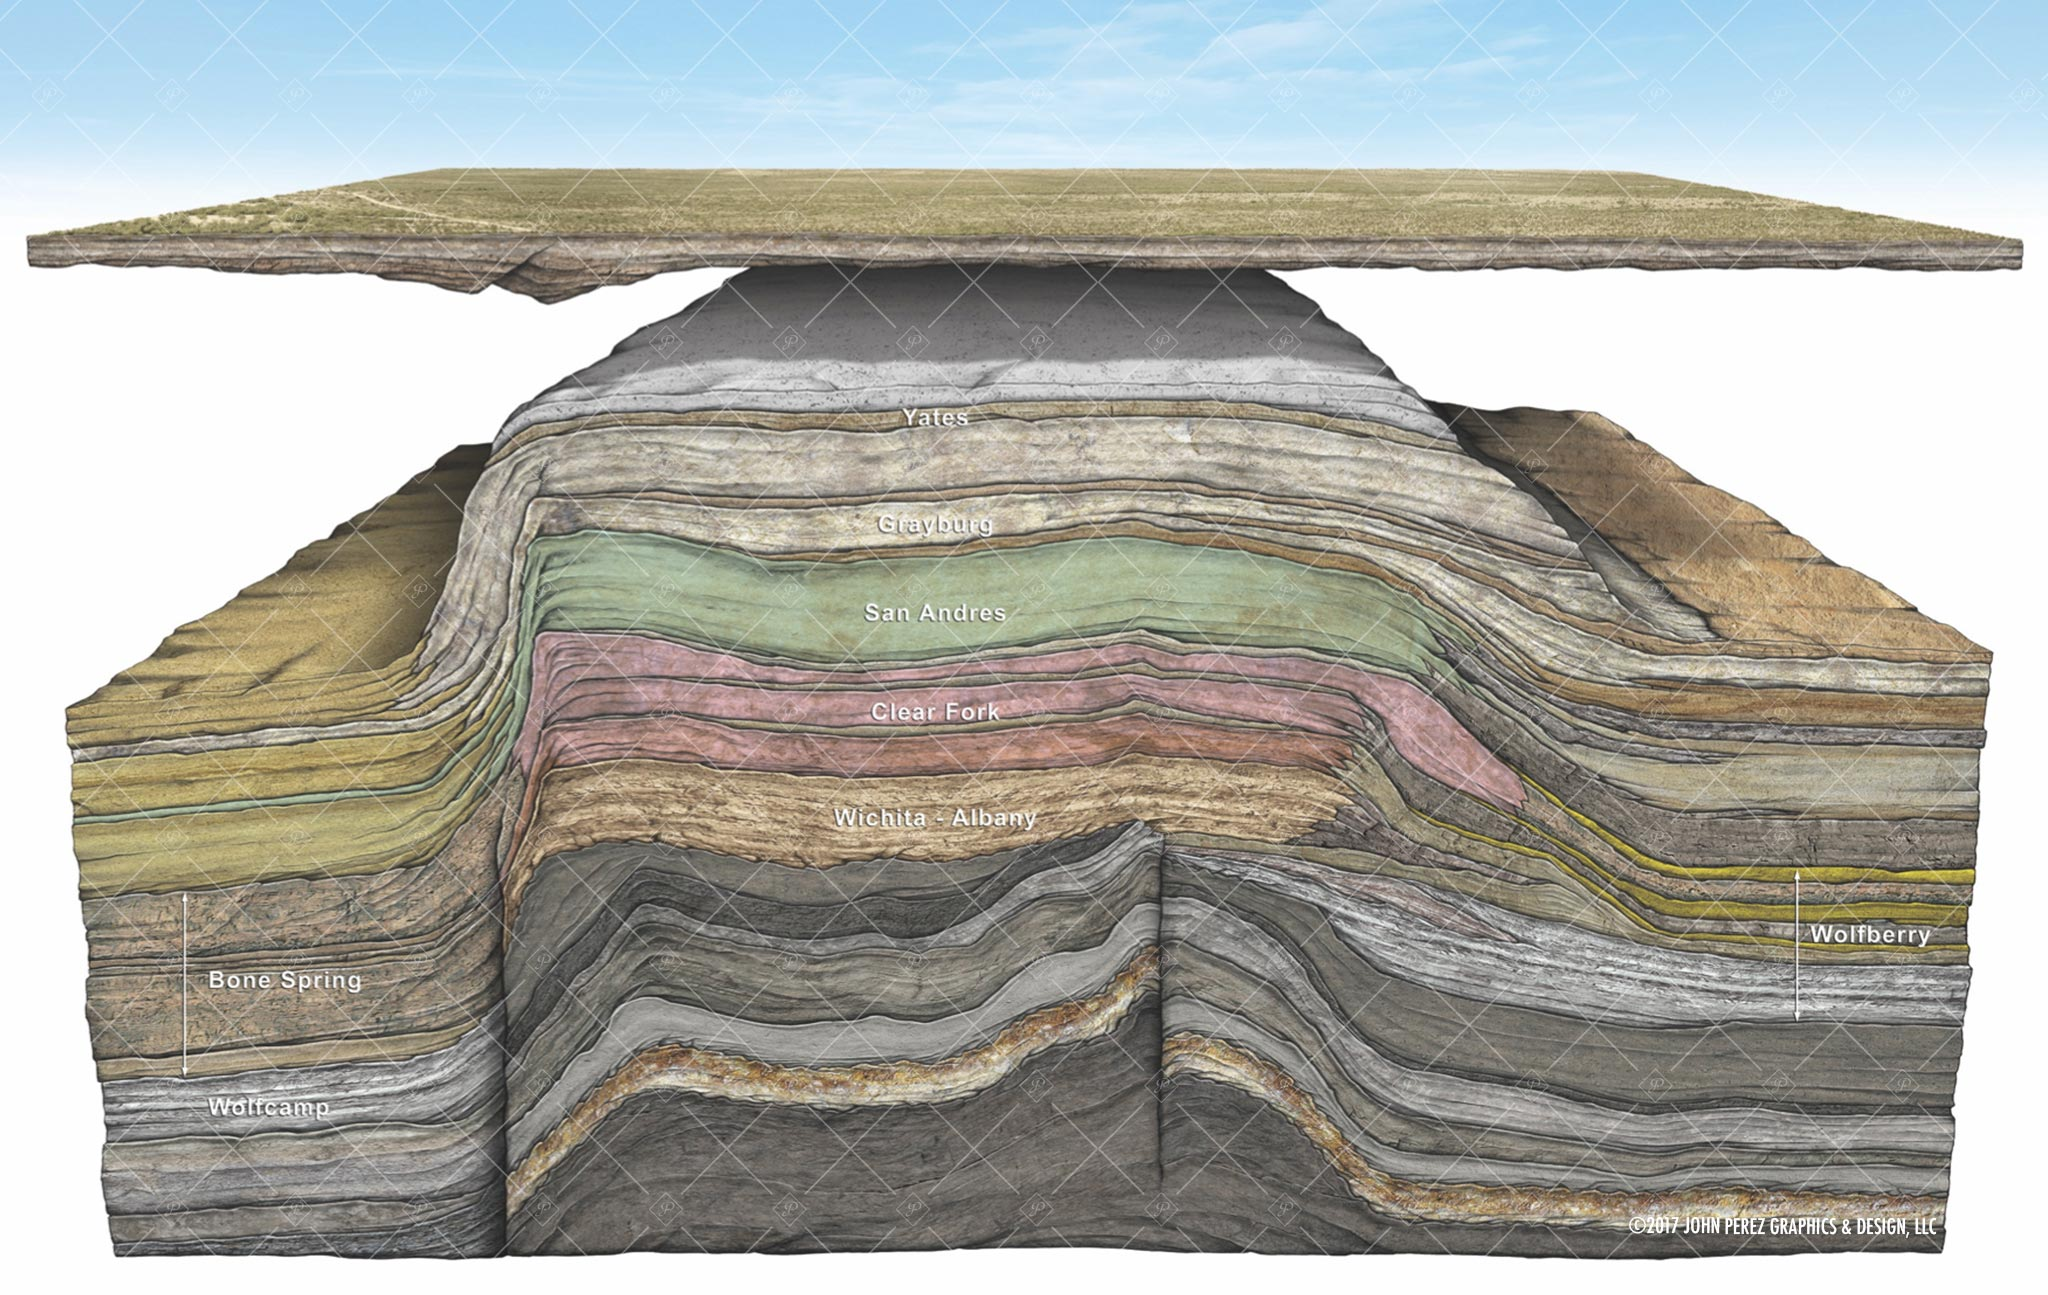 Permian Basin Central Uplift Schematic, oil and gas graphics, oil and gas schematics, drilling geology, permian basin, john perez graphics, Permian Basin Map